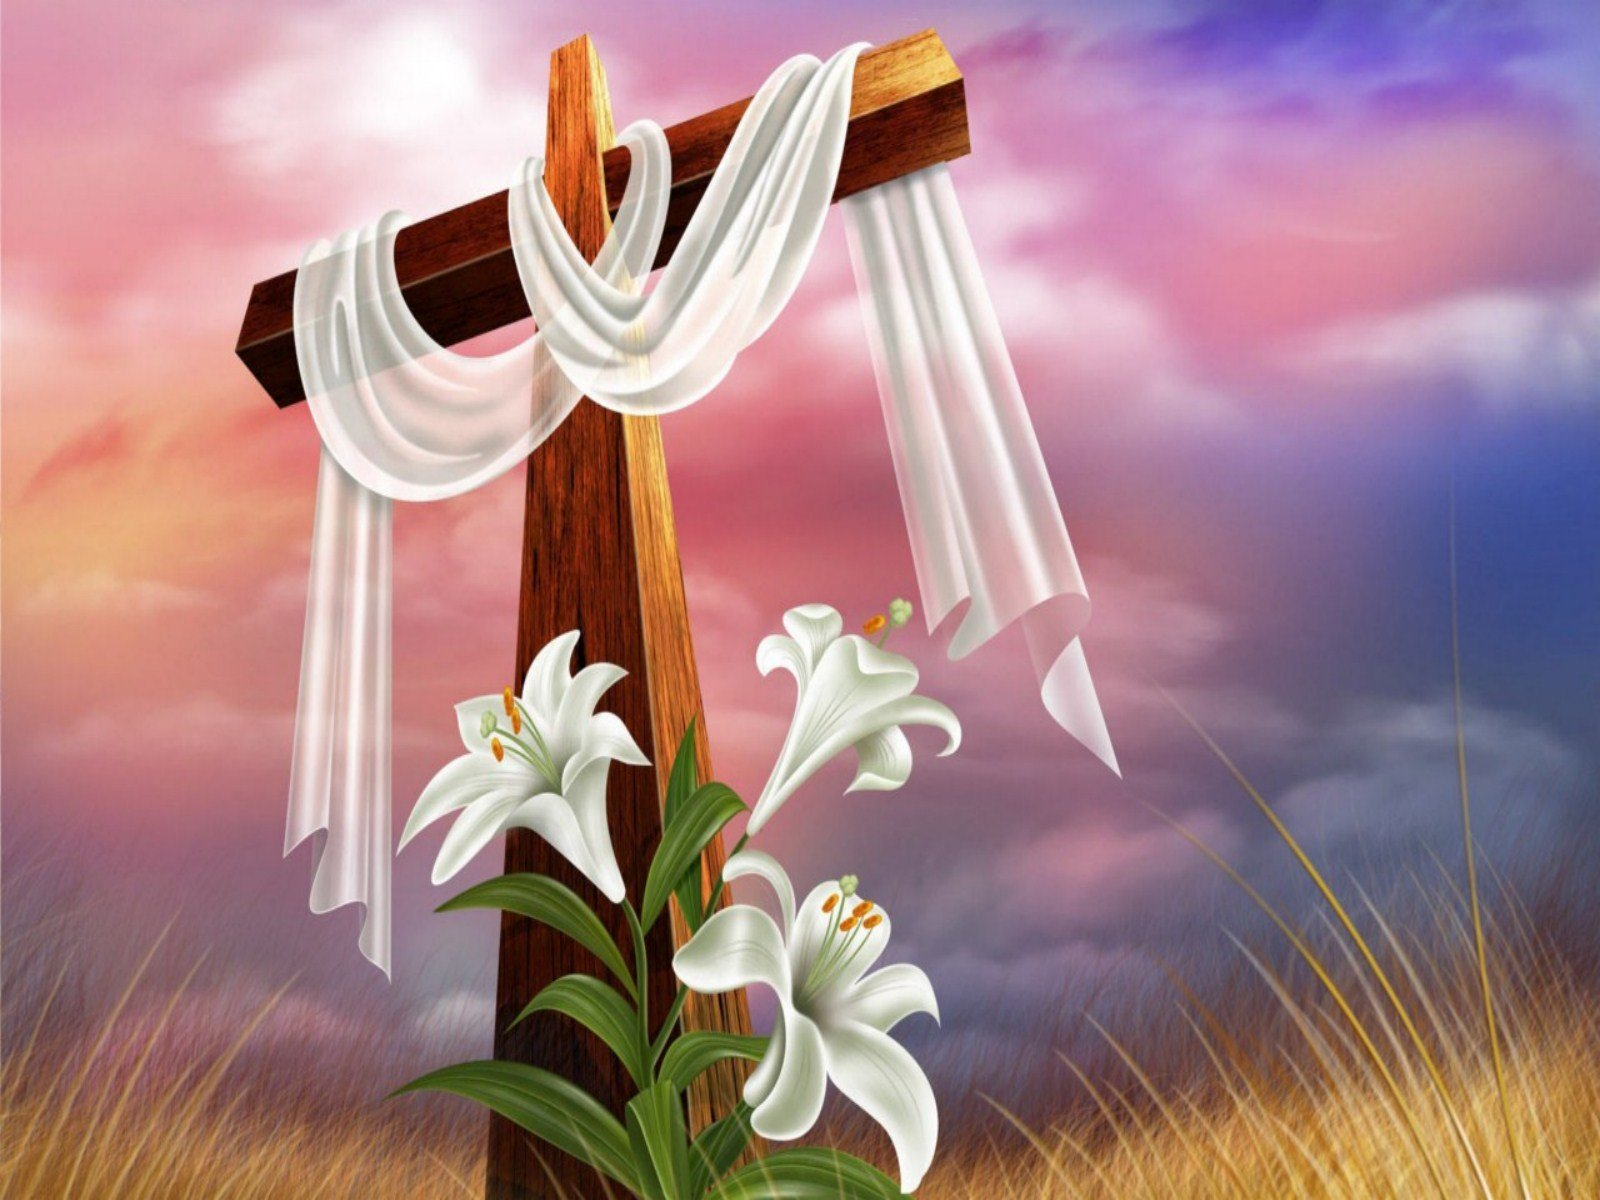 Religious easter wallpaper images wallpapersafari - Religious easter wallpaper ...